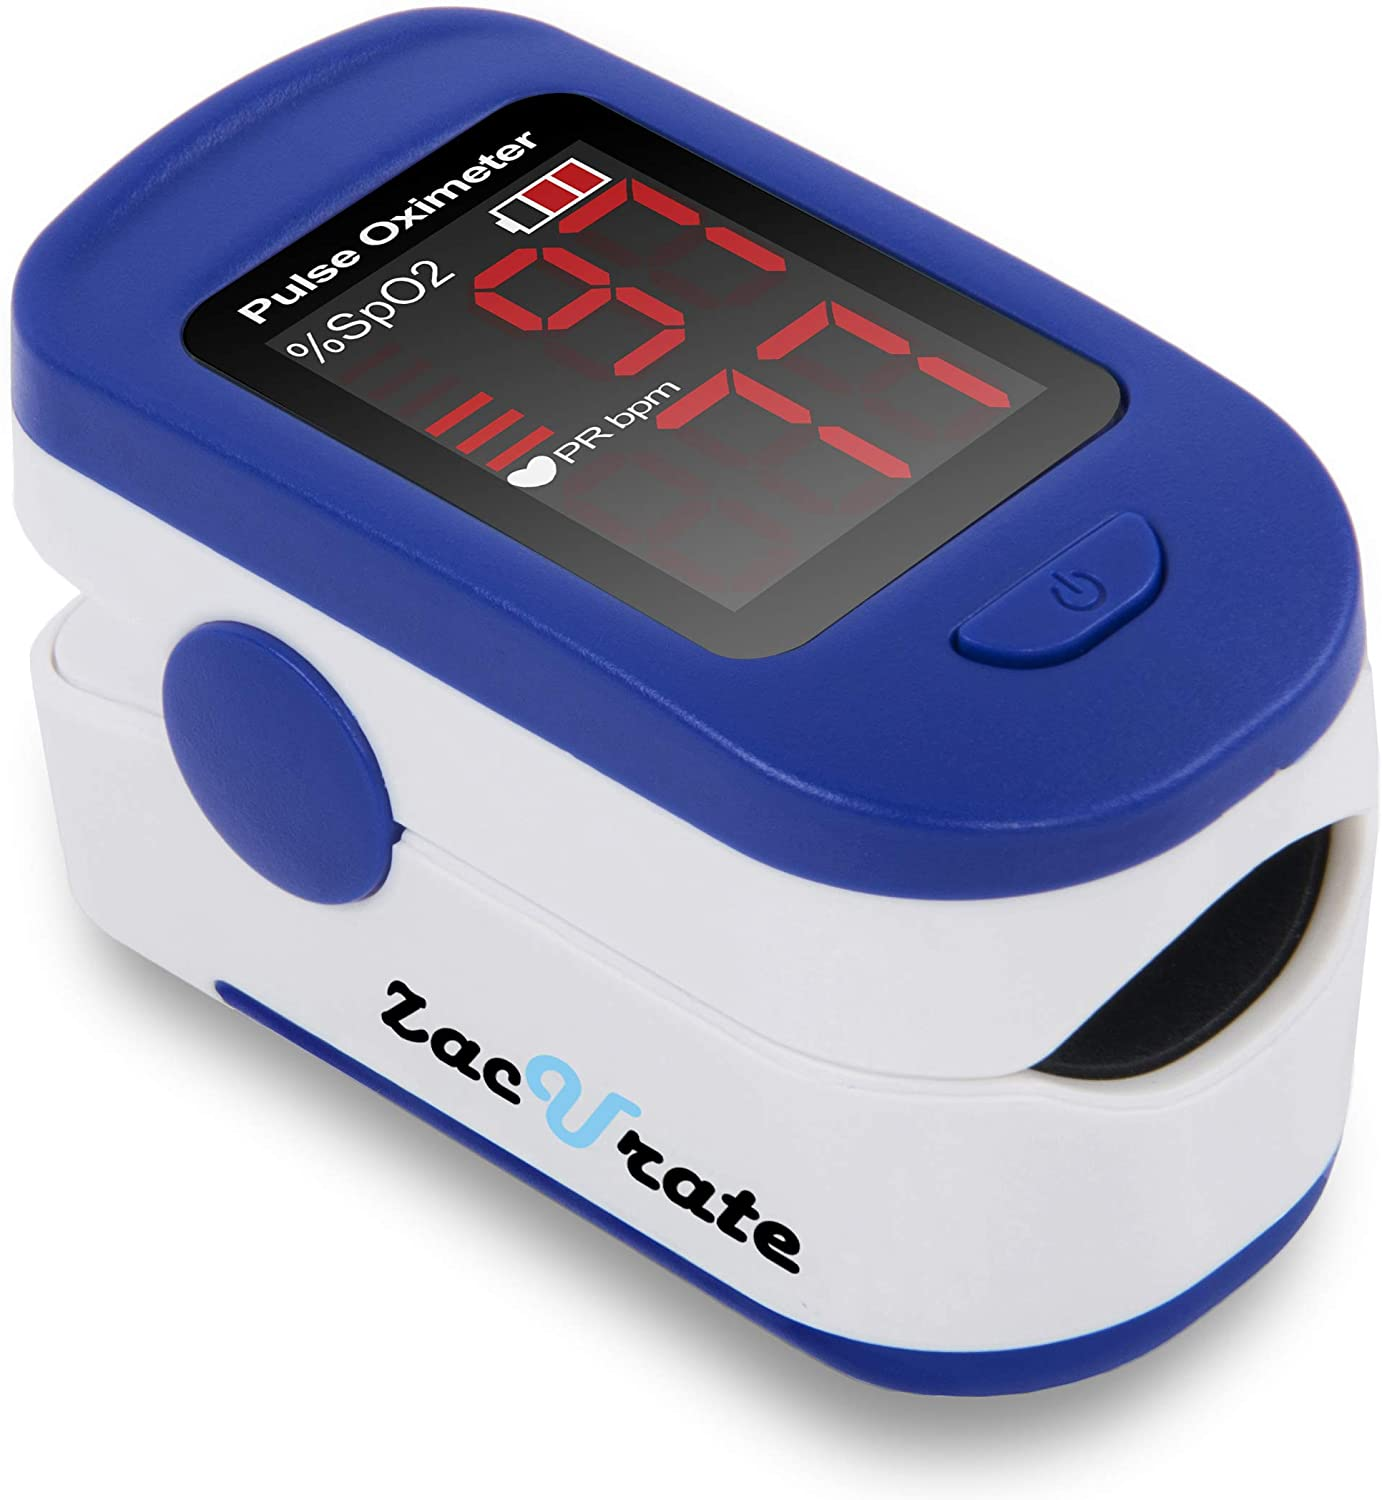 Zacurate 500BL Fingertip Pulse Oximeter Blood Oxygen Saturation Monitor with Batteries and Lanyard Included Navy Blue